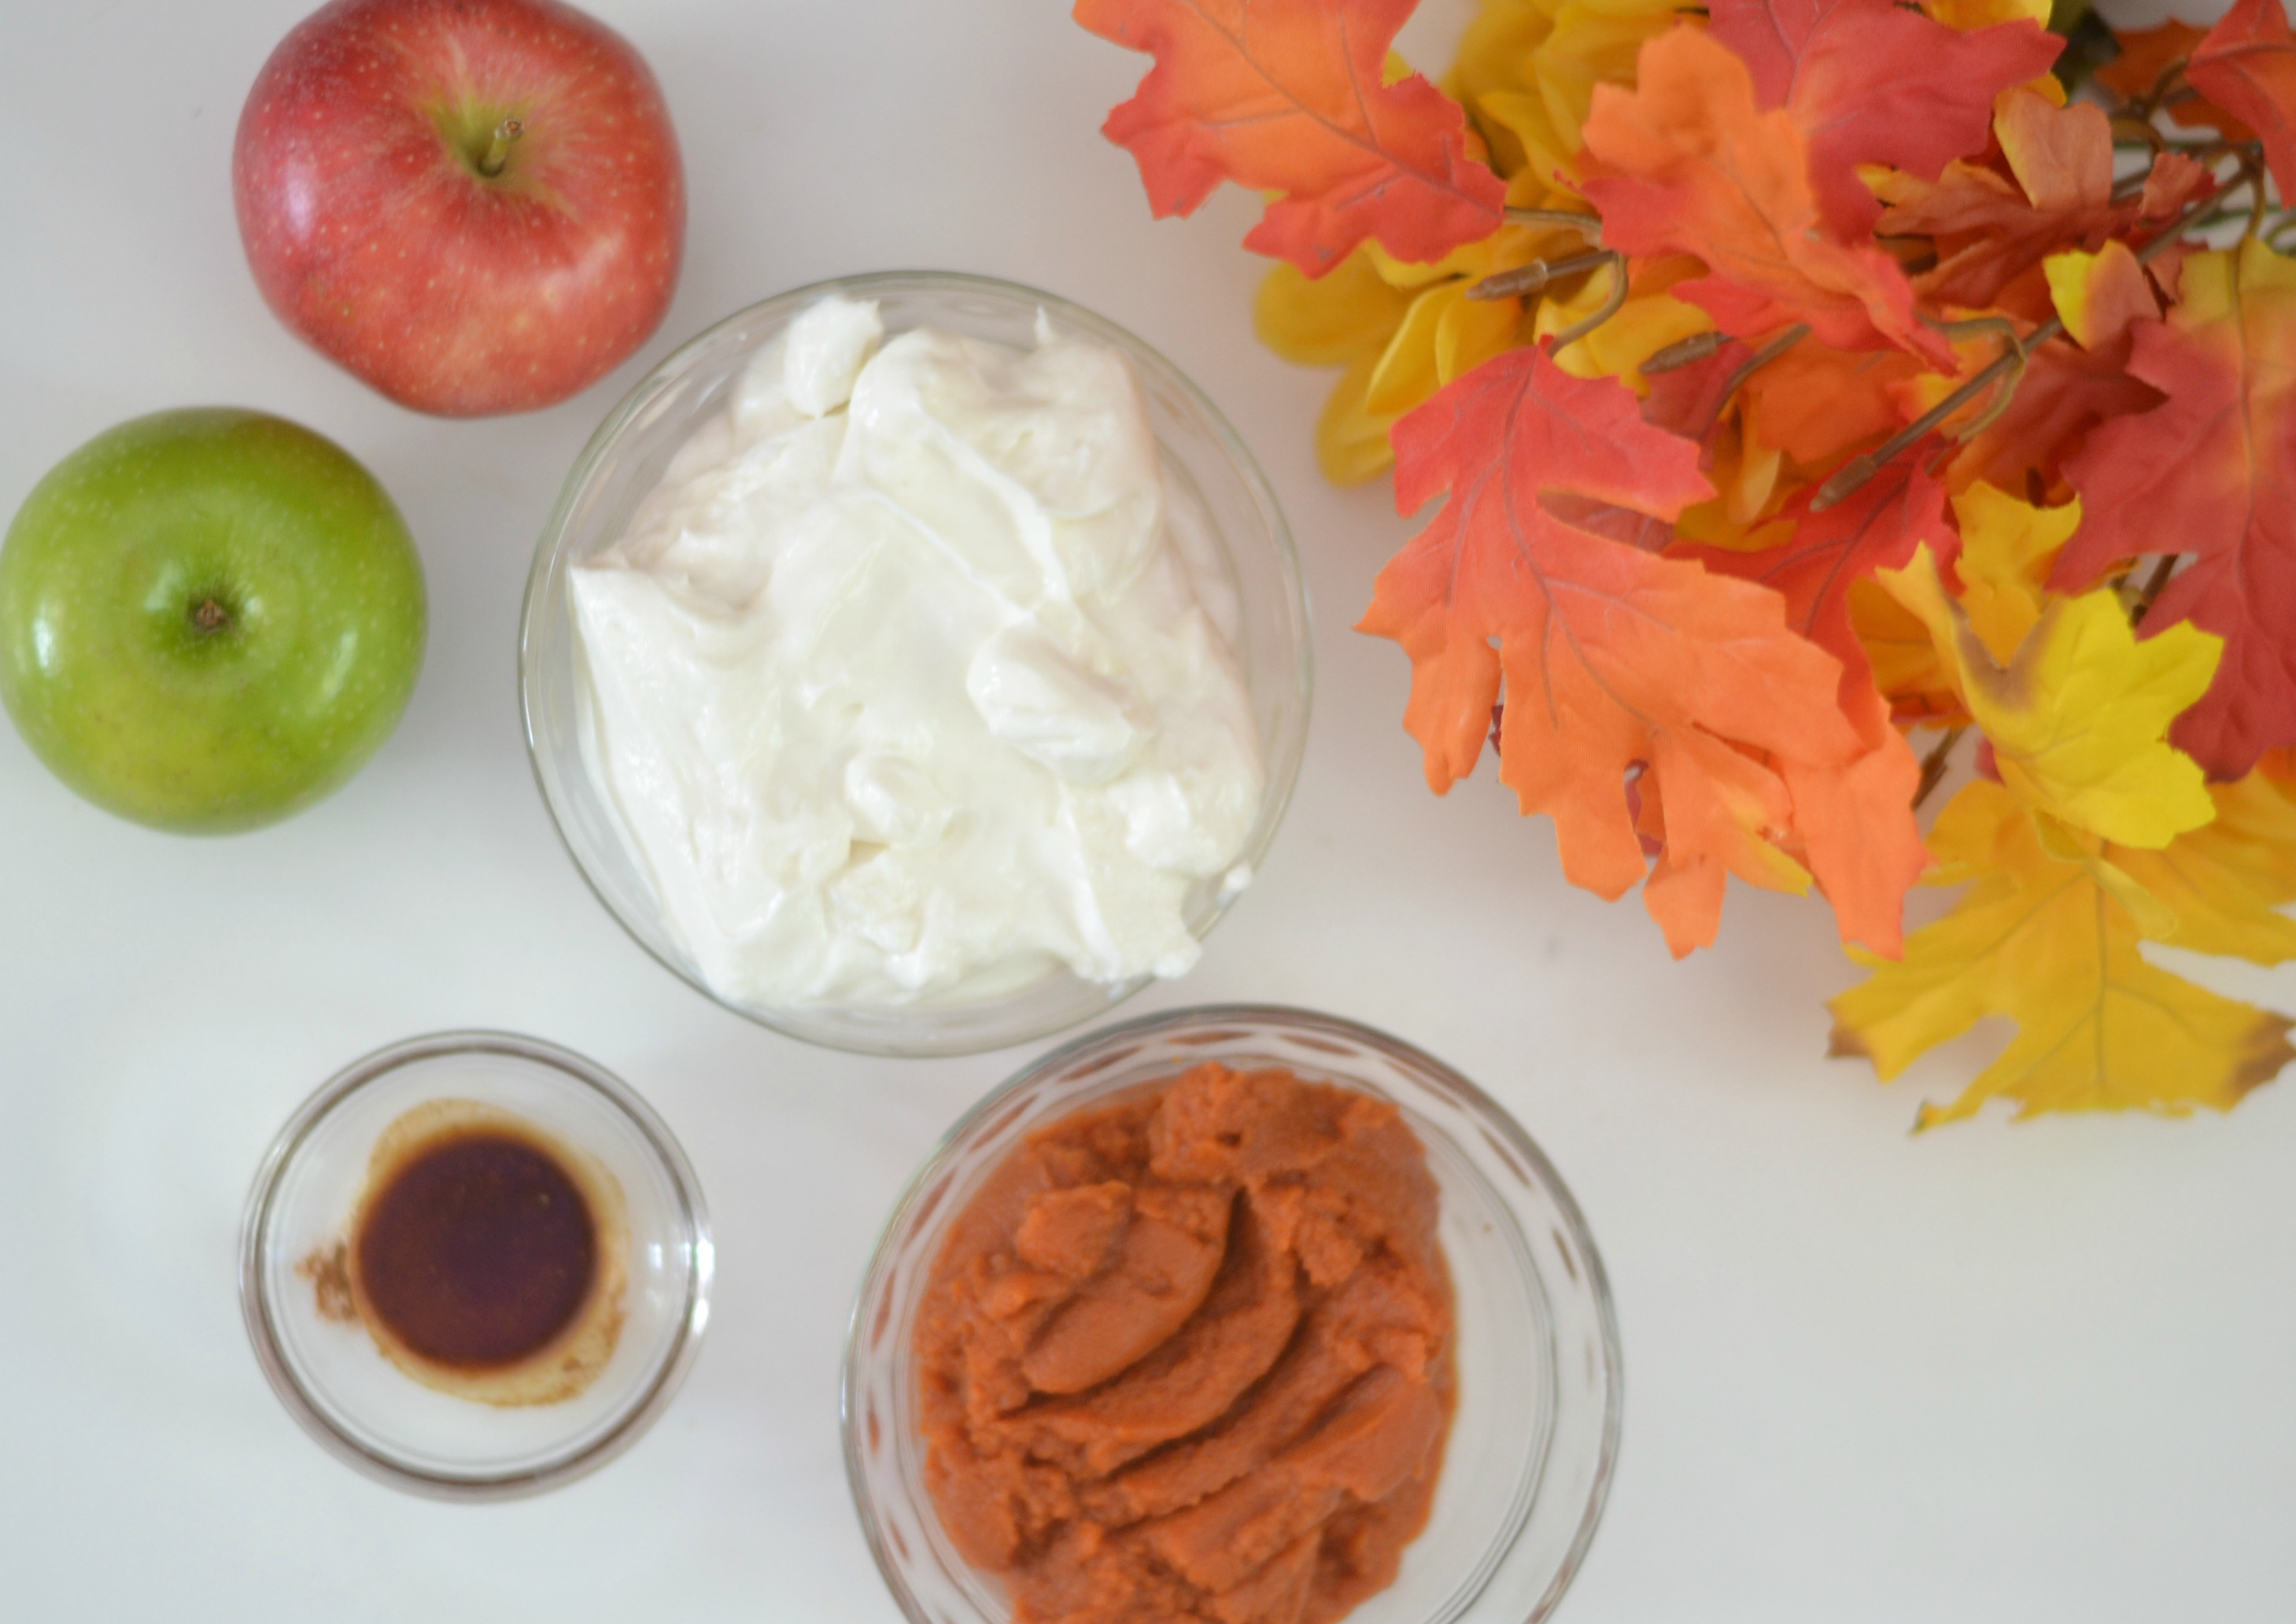 Pumpkin Spice Yogurt Dip, pumpkin spice desserts, pumpkin spice, how to make pumpkin spice dip, Pumpkin Spice greek Yogurt Dip, fall dessert ideas, healthy pumpkin spice yogurt dip, fall recipes, yogurt dip recipes, greek yogurt dip recipes